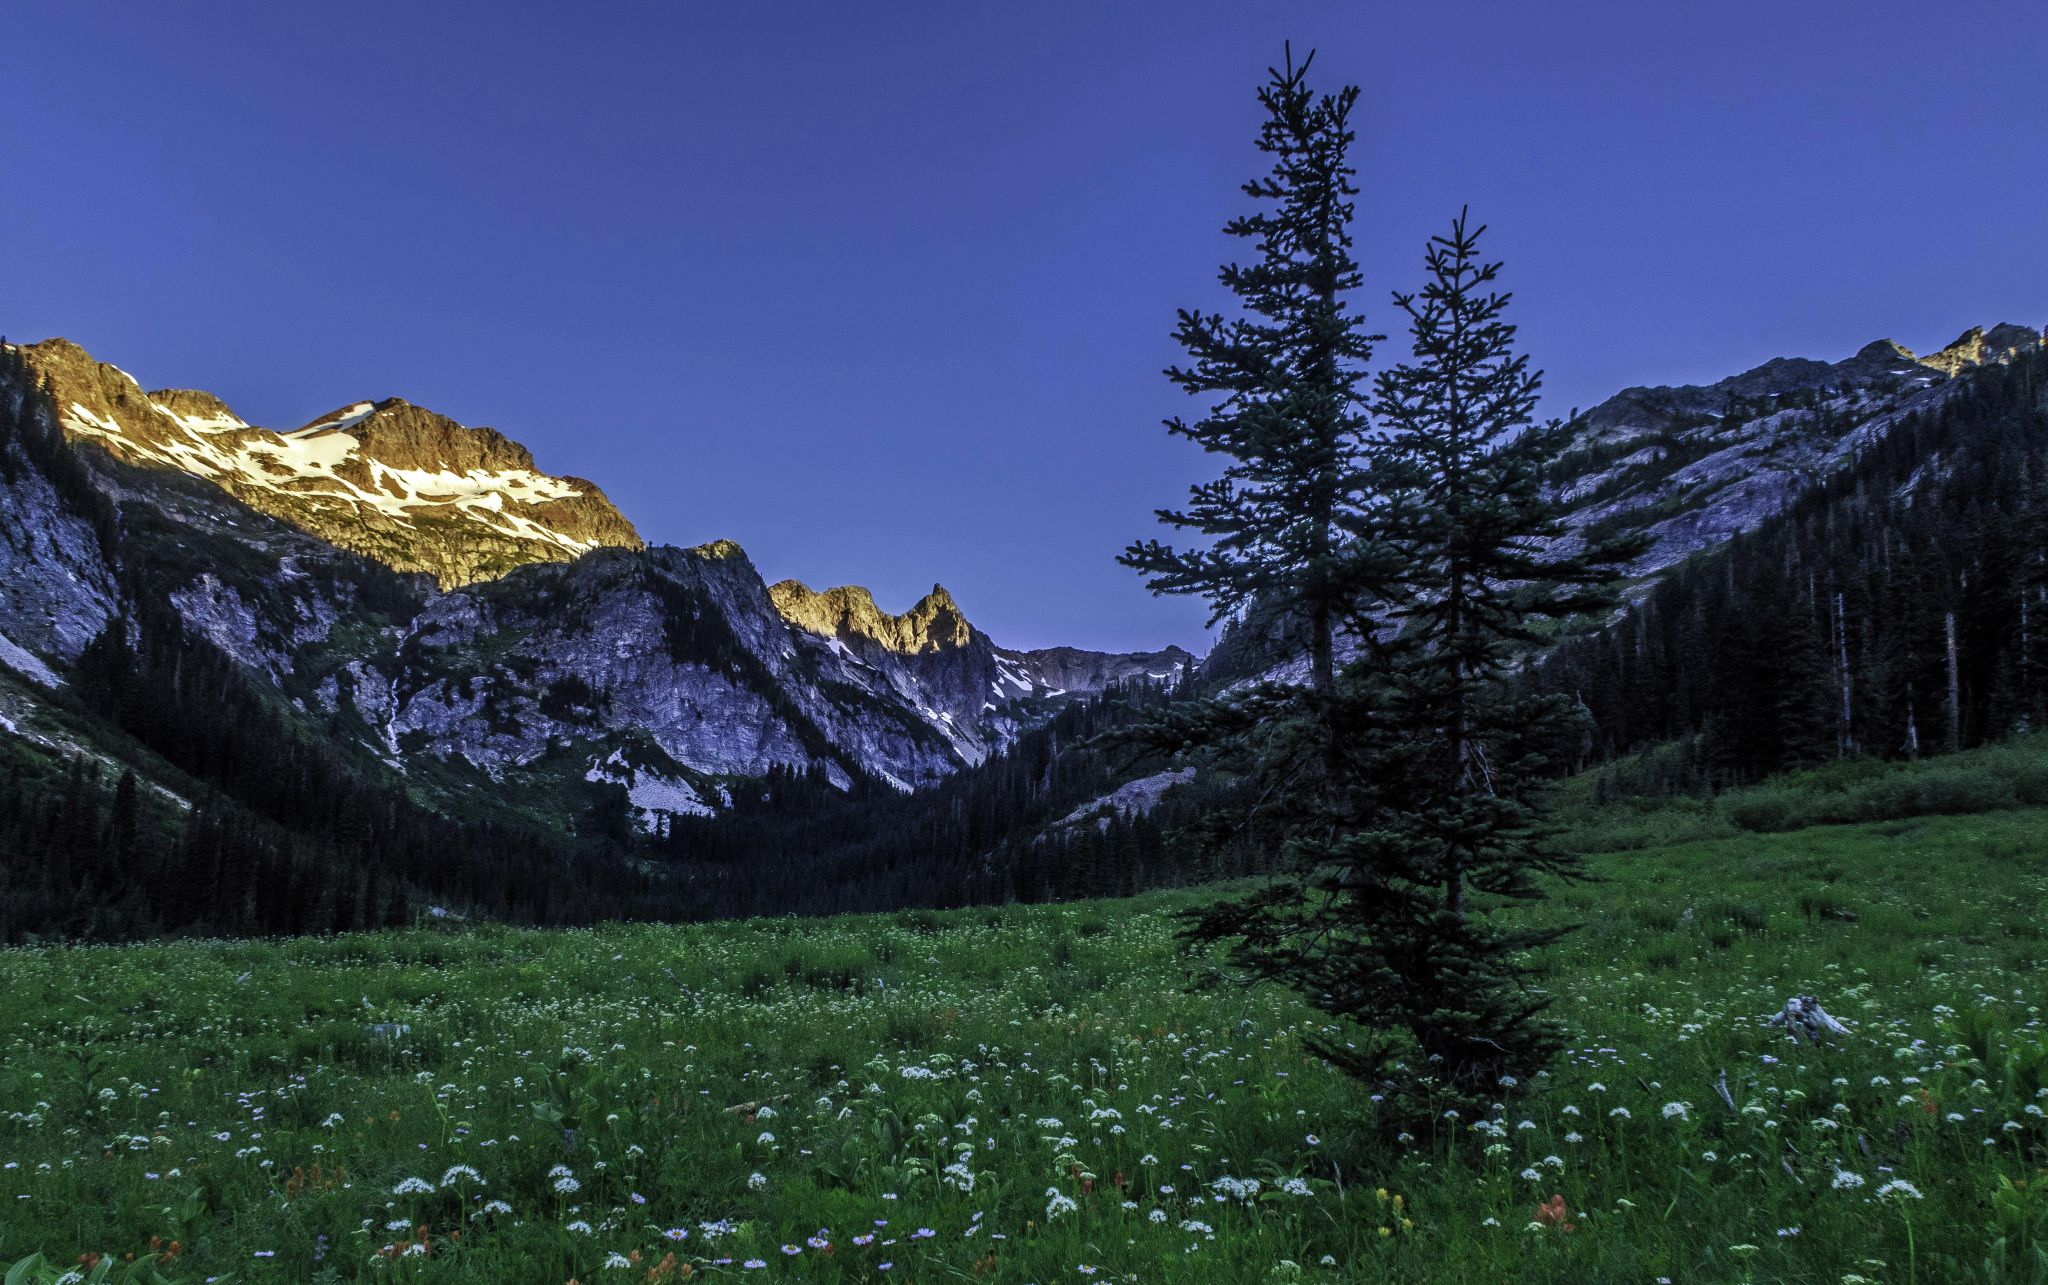 Spider Meadow 1, USA